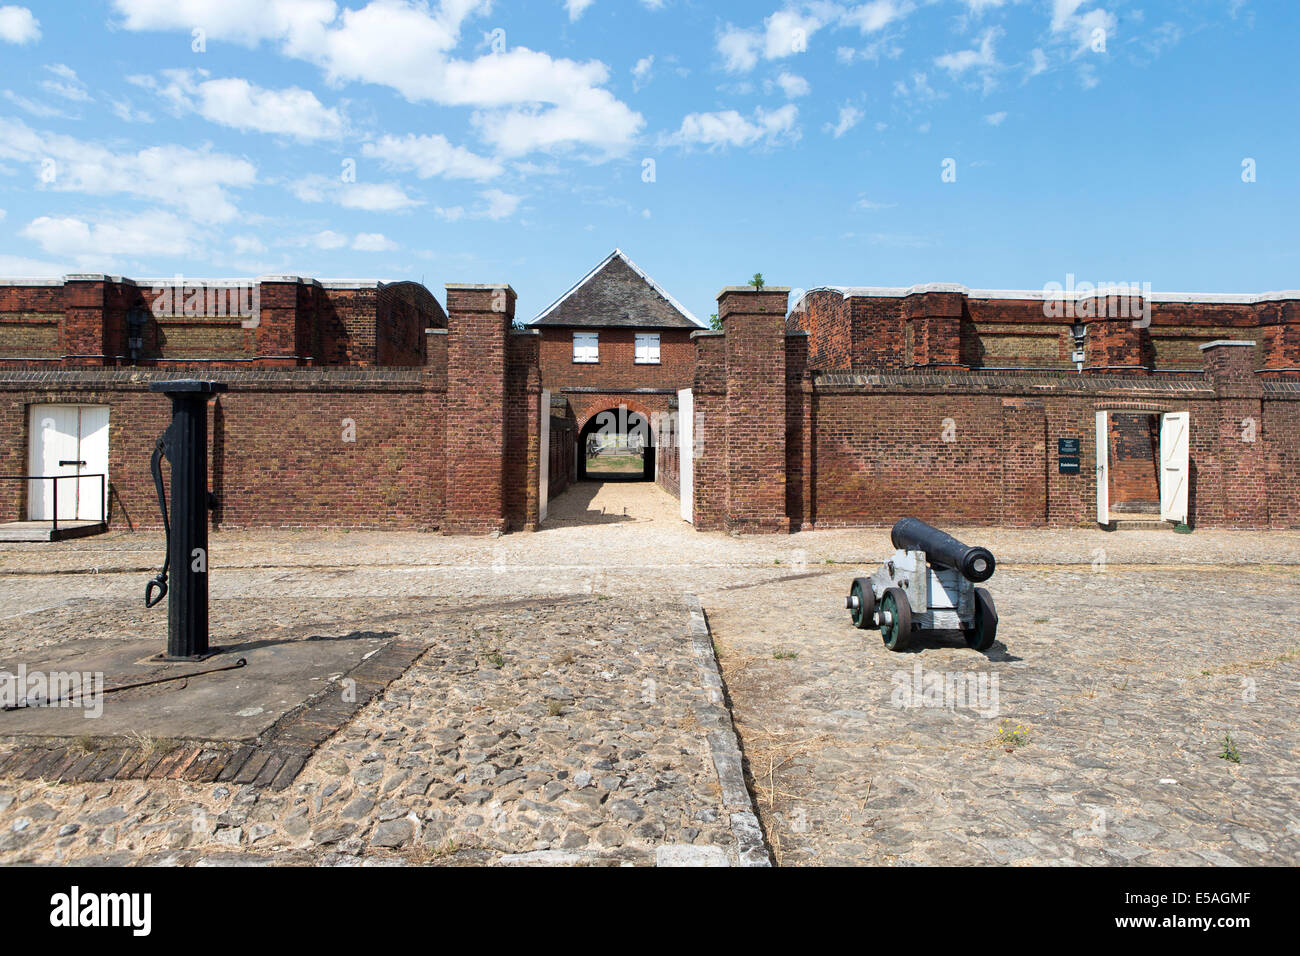 Cannon & Water pump on the parade ground in front of the Landport gate at Tilbury Fort, Essex, England, UK. - Stock Image